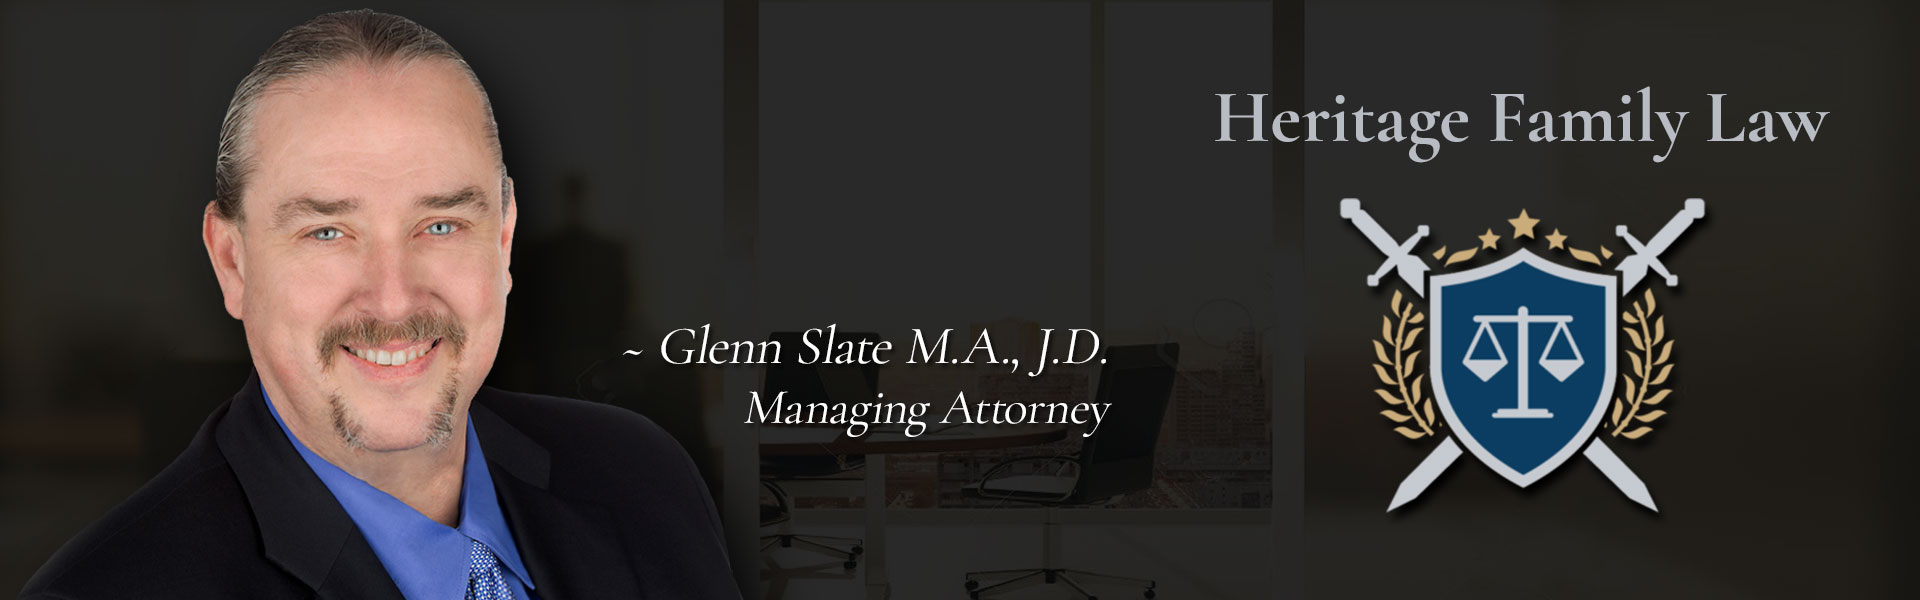 Heritage Family Law Attorneys